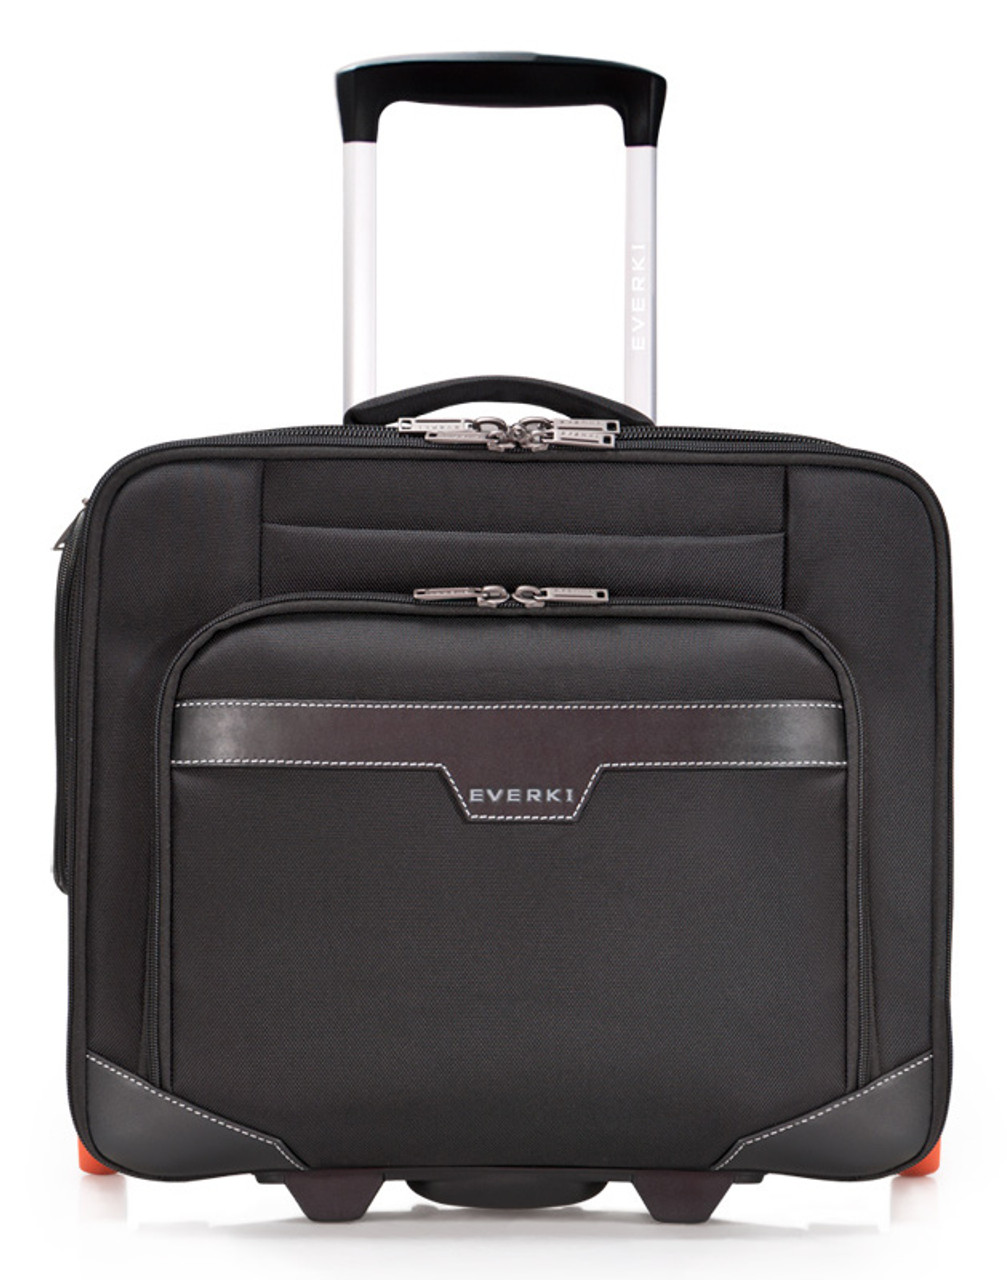 Image for Everki 16in Journey Trolley Bag with 11in to 16inAdaptable Compartment CX Computer Superstore